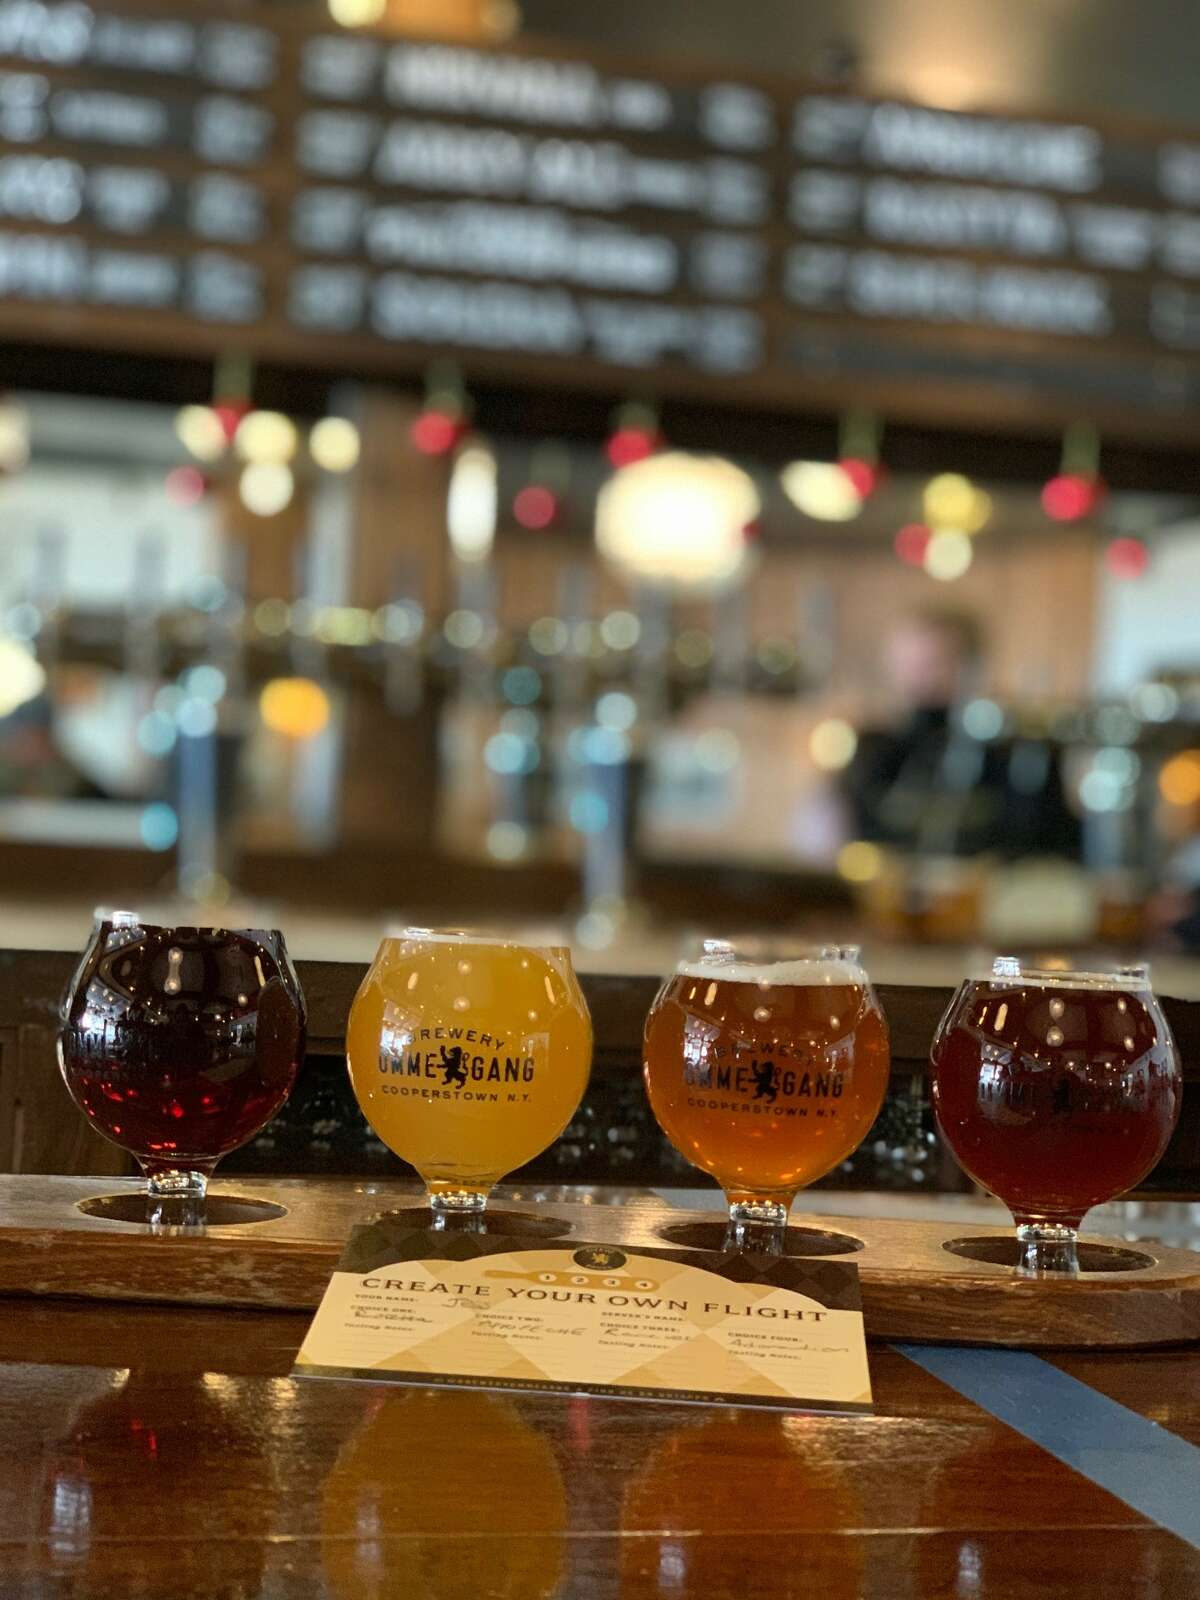 A flight of beers from Brewery Ommegang in Cooperstown.